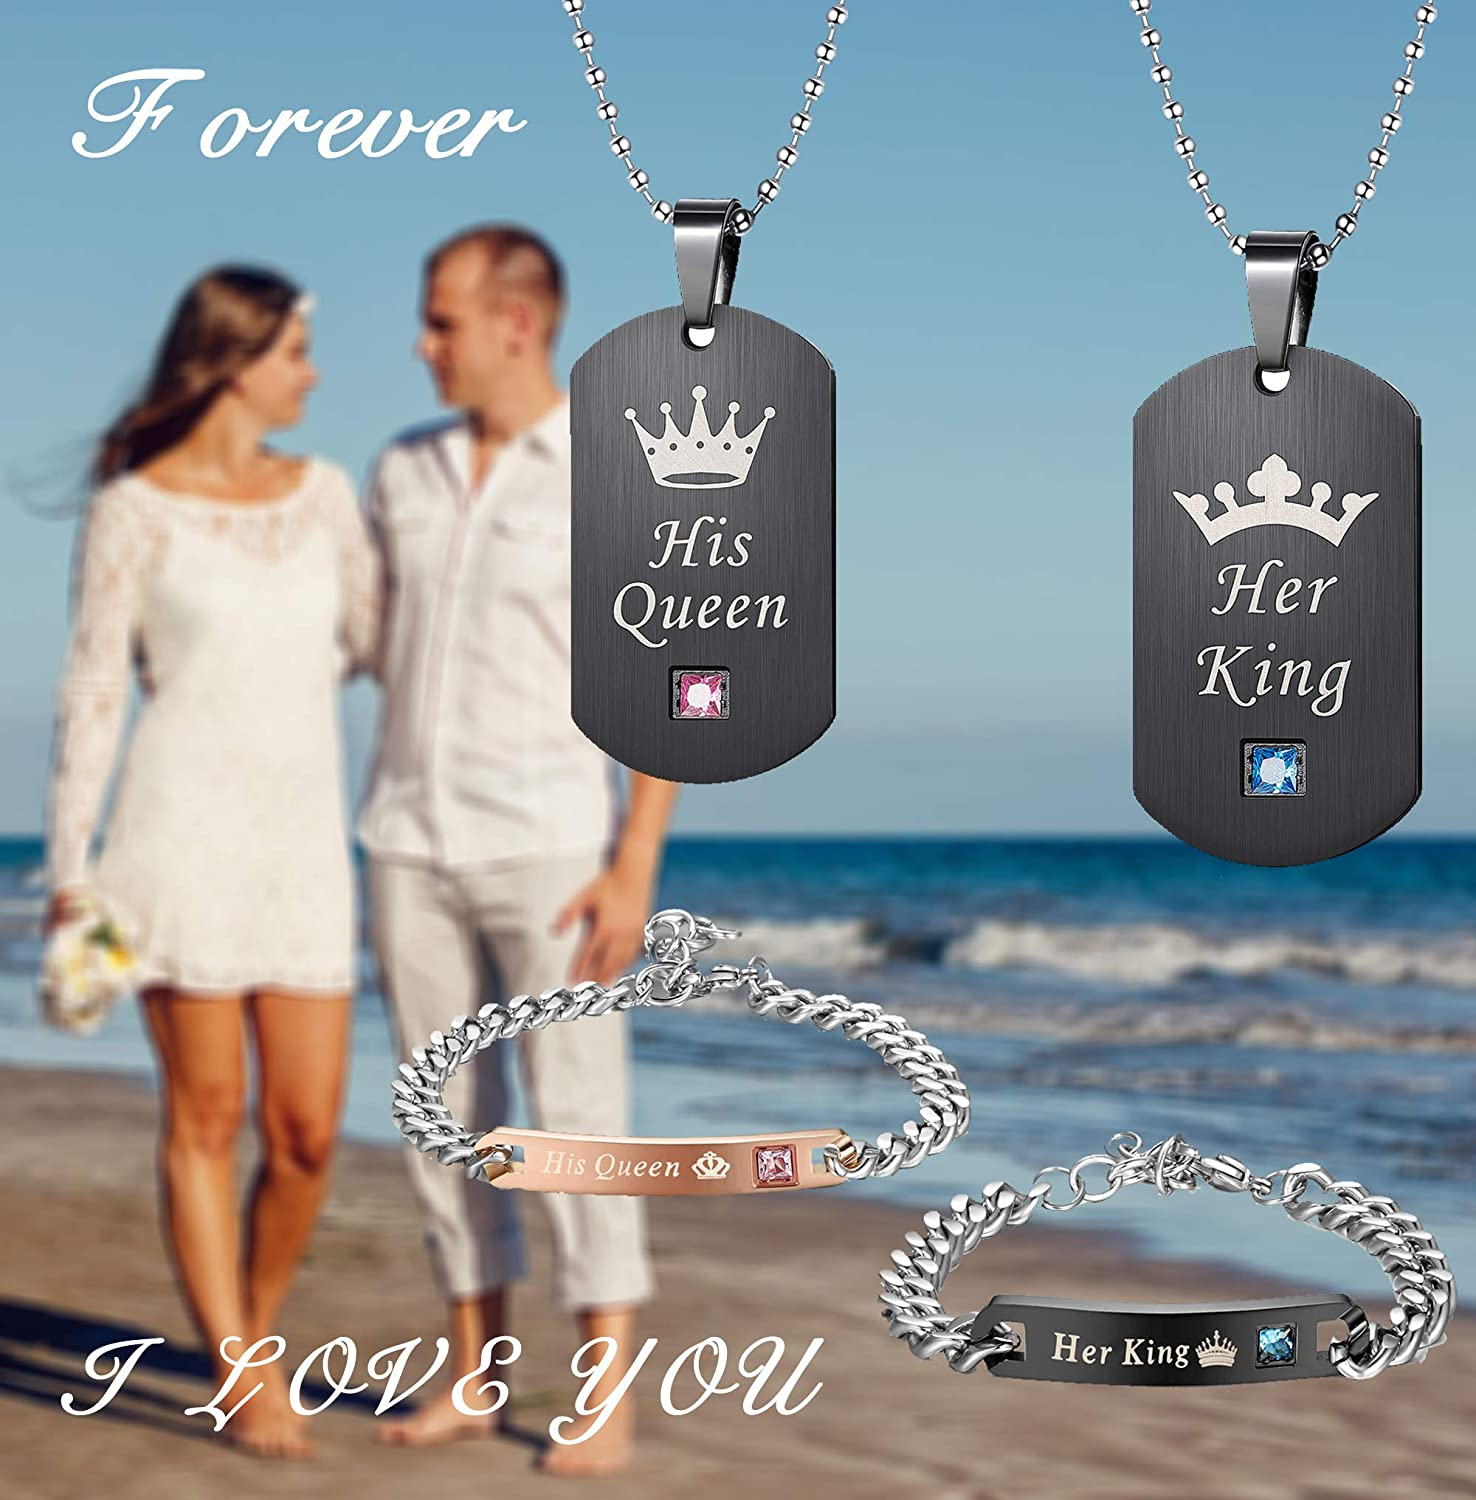 cce2fcb7a8 Women LOYALLOOK Couples Necklaces Bracelets Set for Him and Her His Queen  Her King Couples Jewelry ...